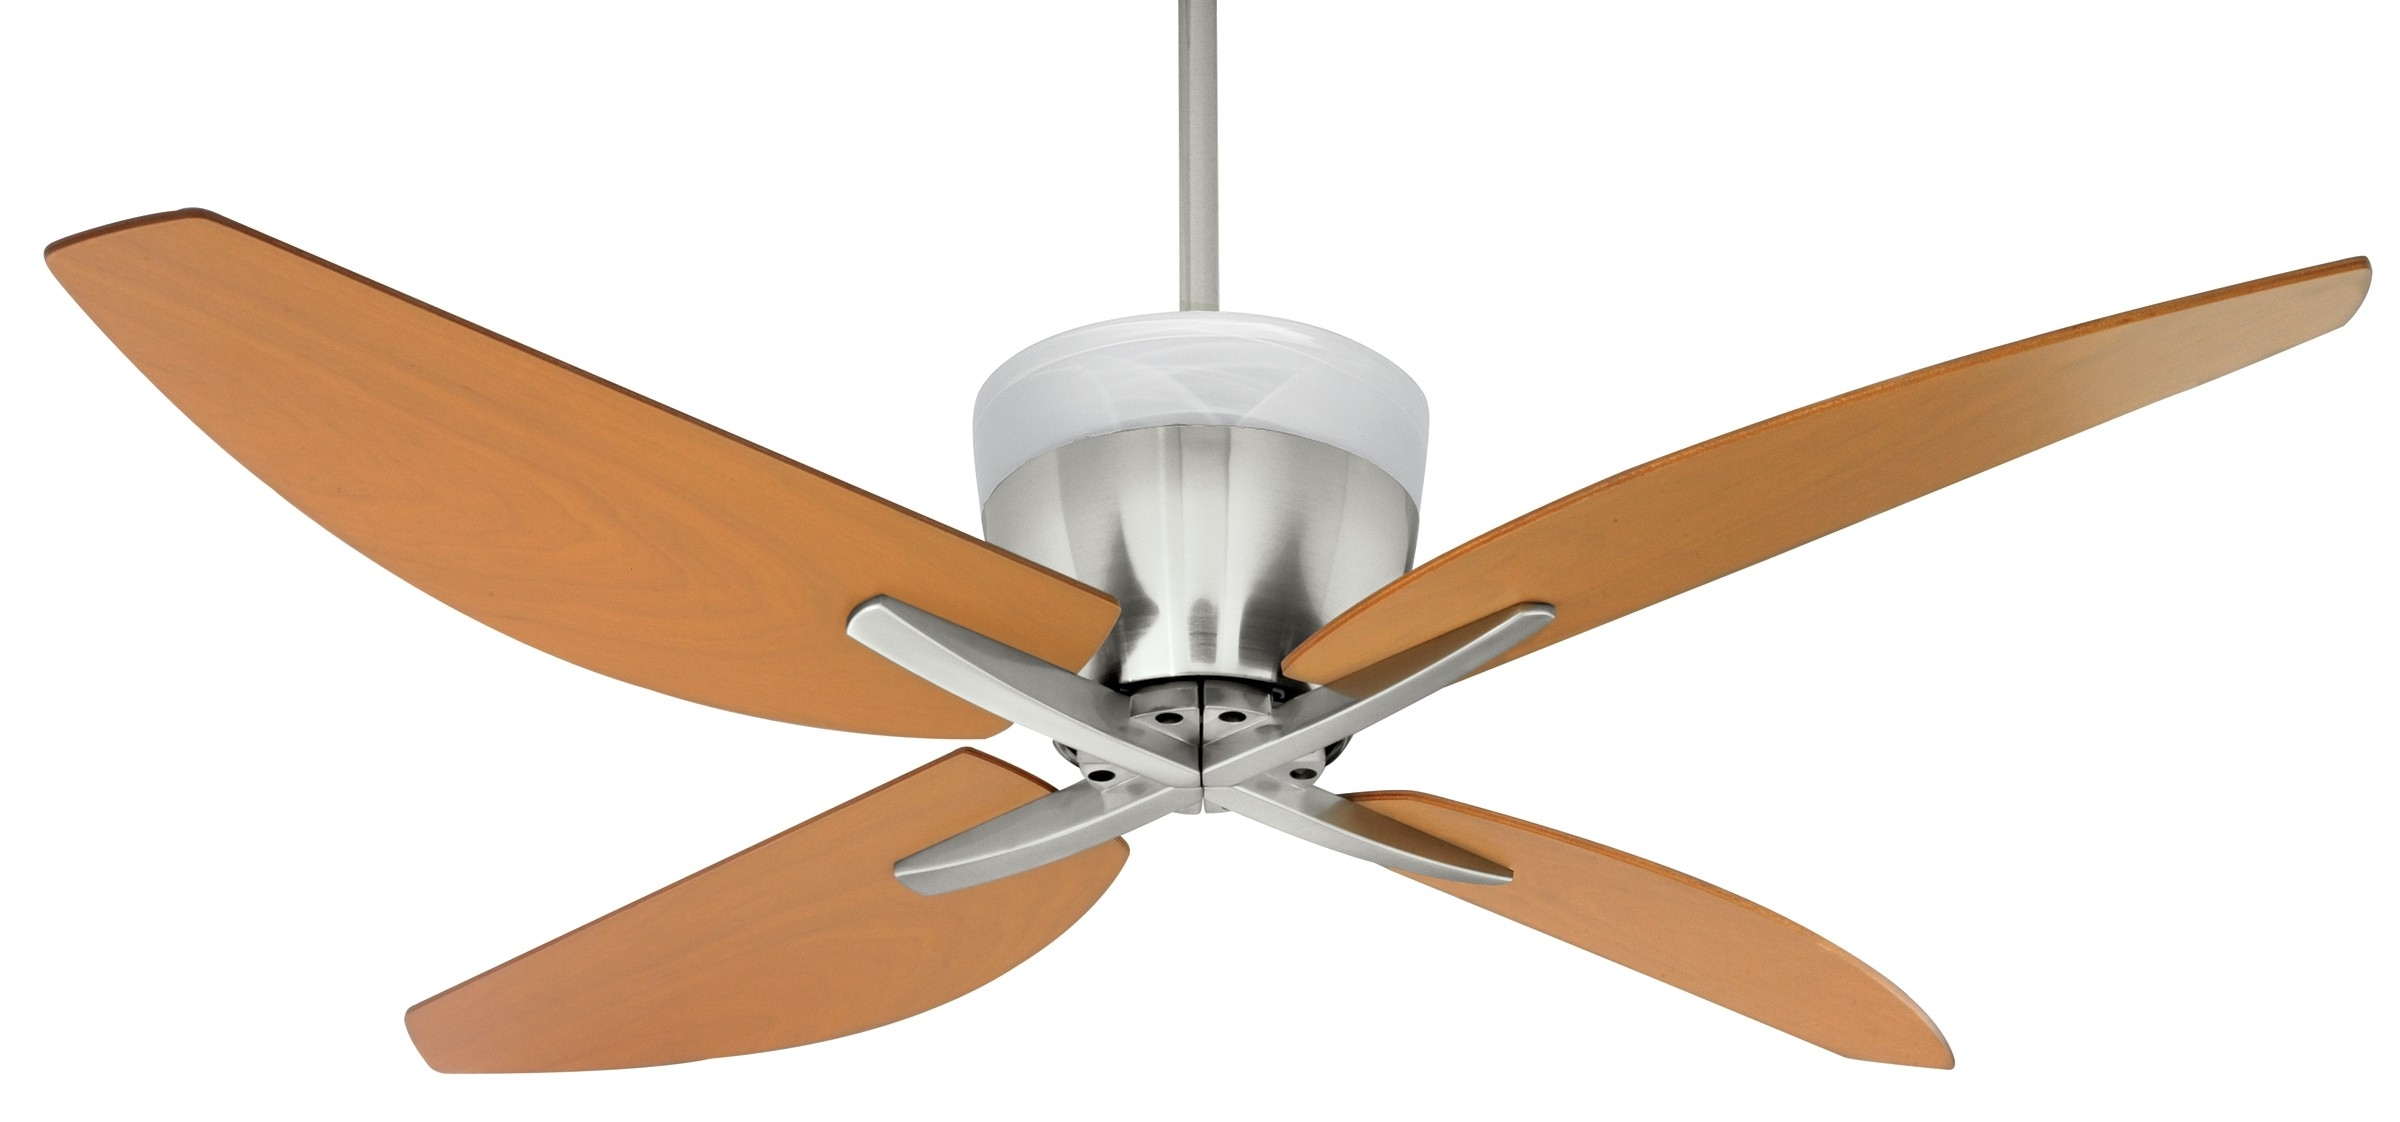 Outdoor Ceiling Fans With Uplights With Regard To Well Known Ceiling: Amusing Ceiling Fans With Uplights Hunter Uplight Ceiling (View 19 of 20)